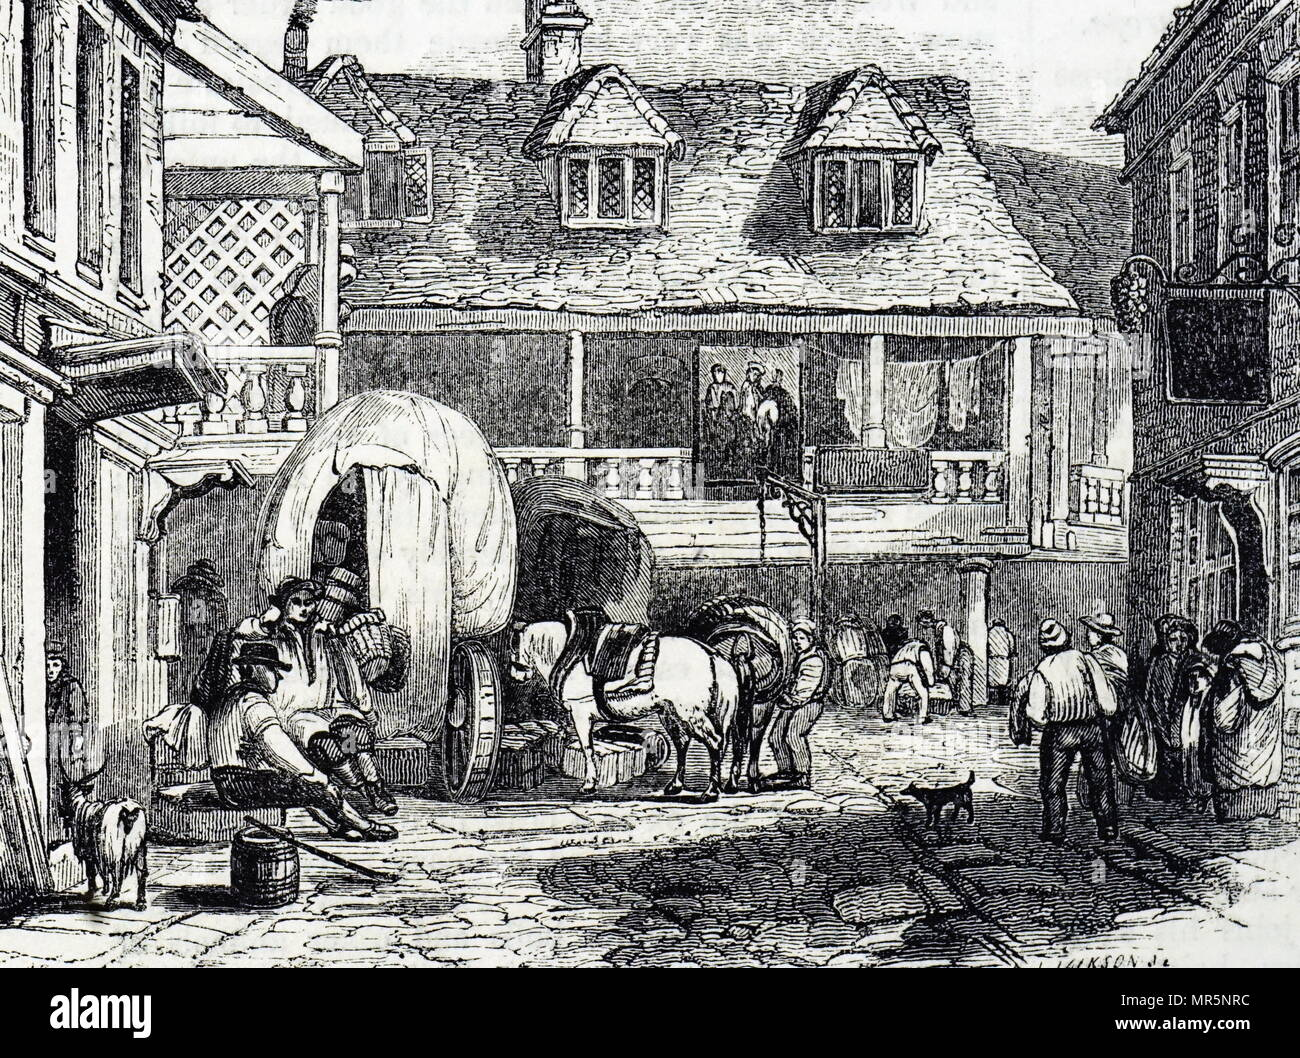 Engraving depicting waggons in the yard of Talbot Inn, Southwark. Dated 19th century - Stock Image